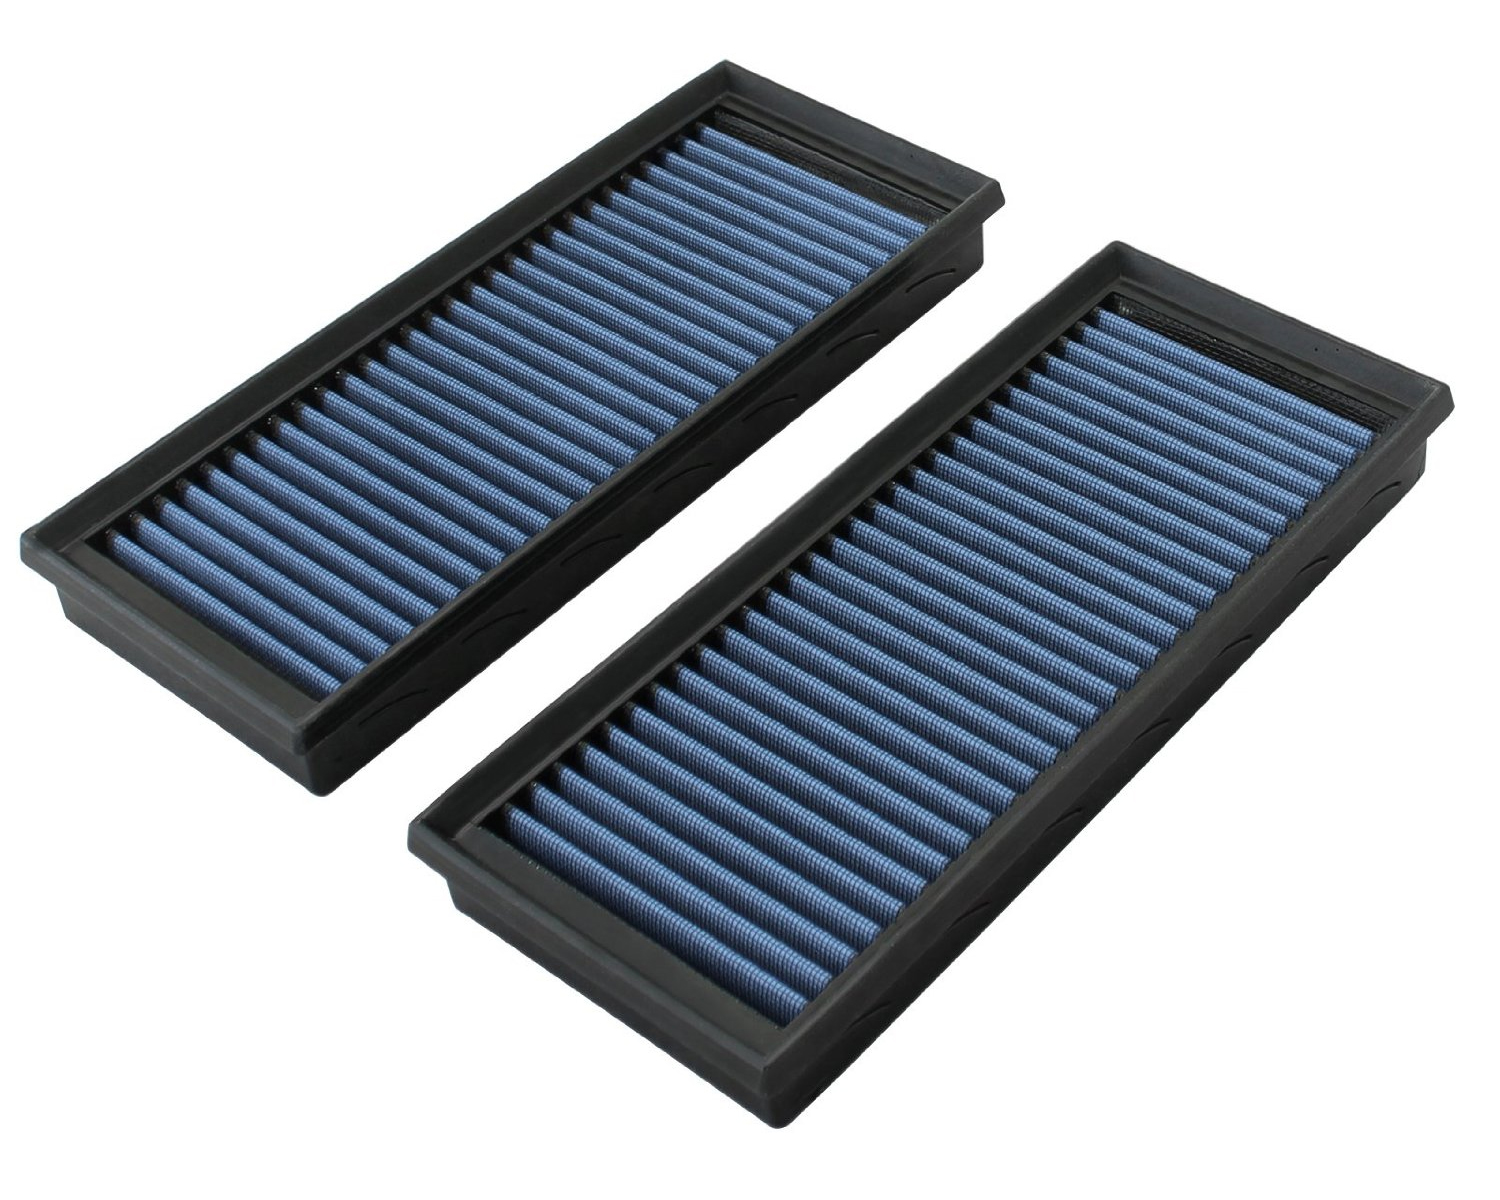 aFe Magnum Flow Air Filter PRO 5R Mercedes-Benz CL63/E63/S63 AMG 11-13